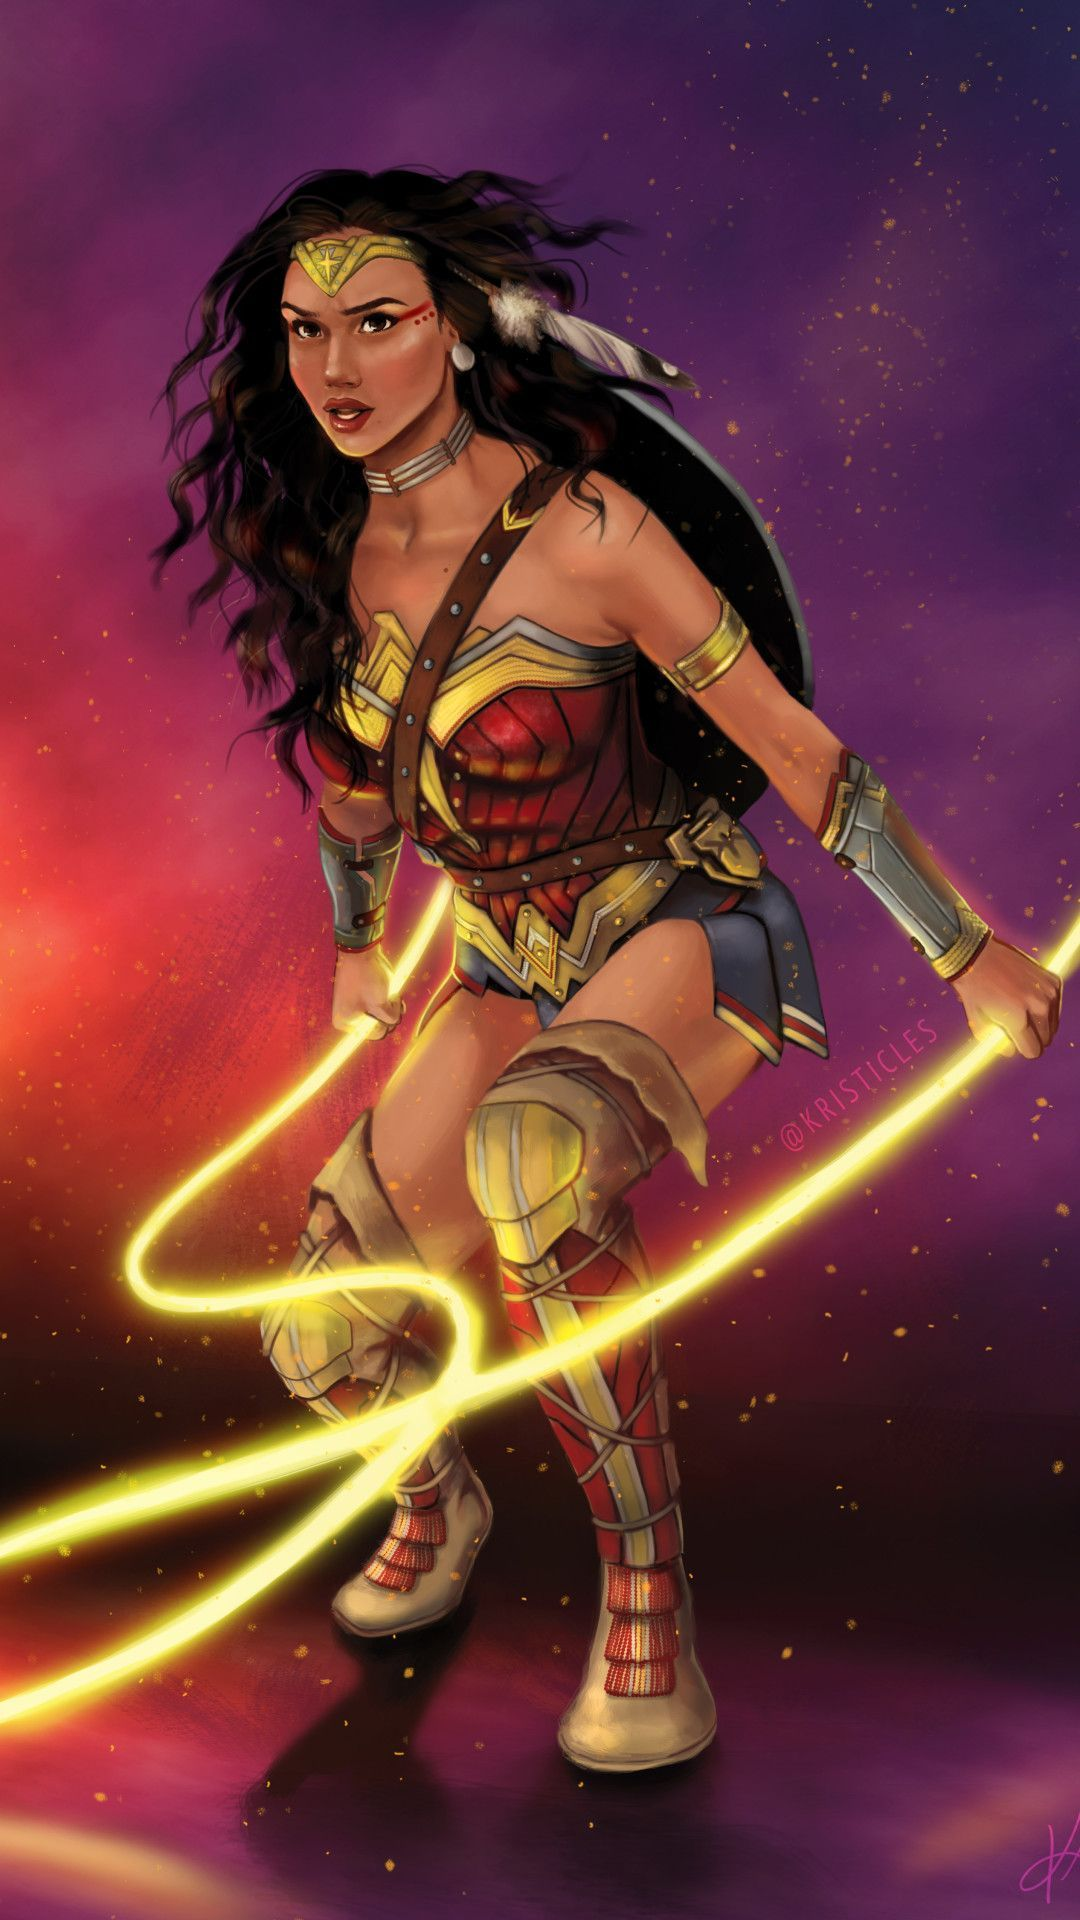 4k Art Wonder Woman Mobile Wallpaper Iphone Android Samsung